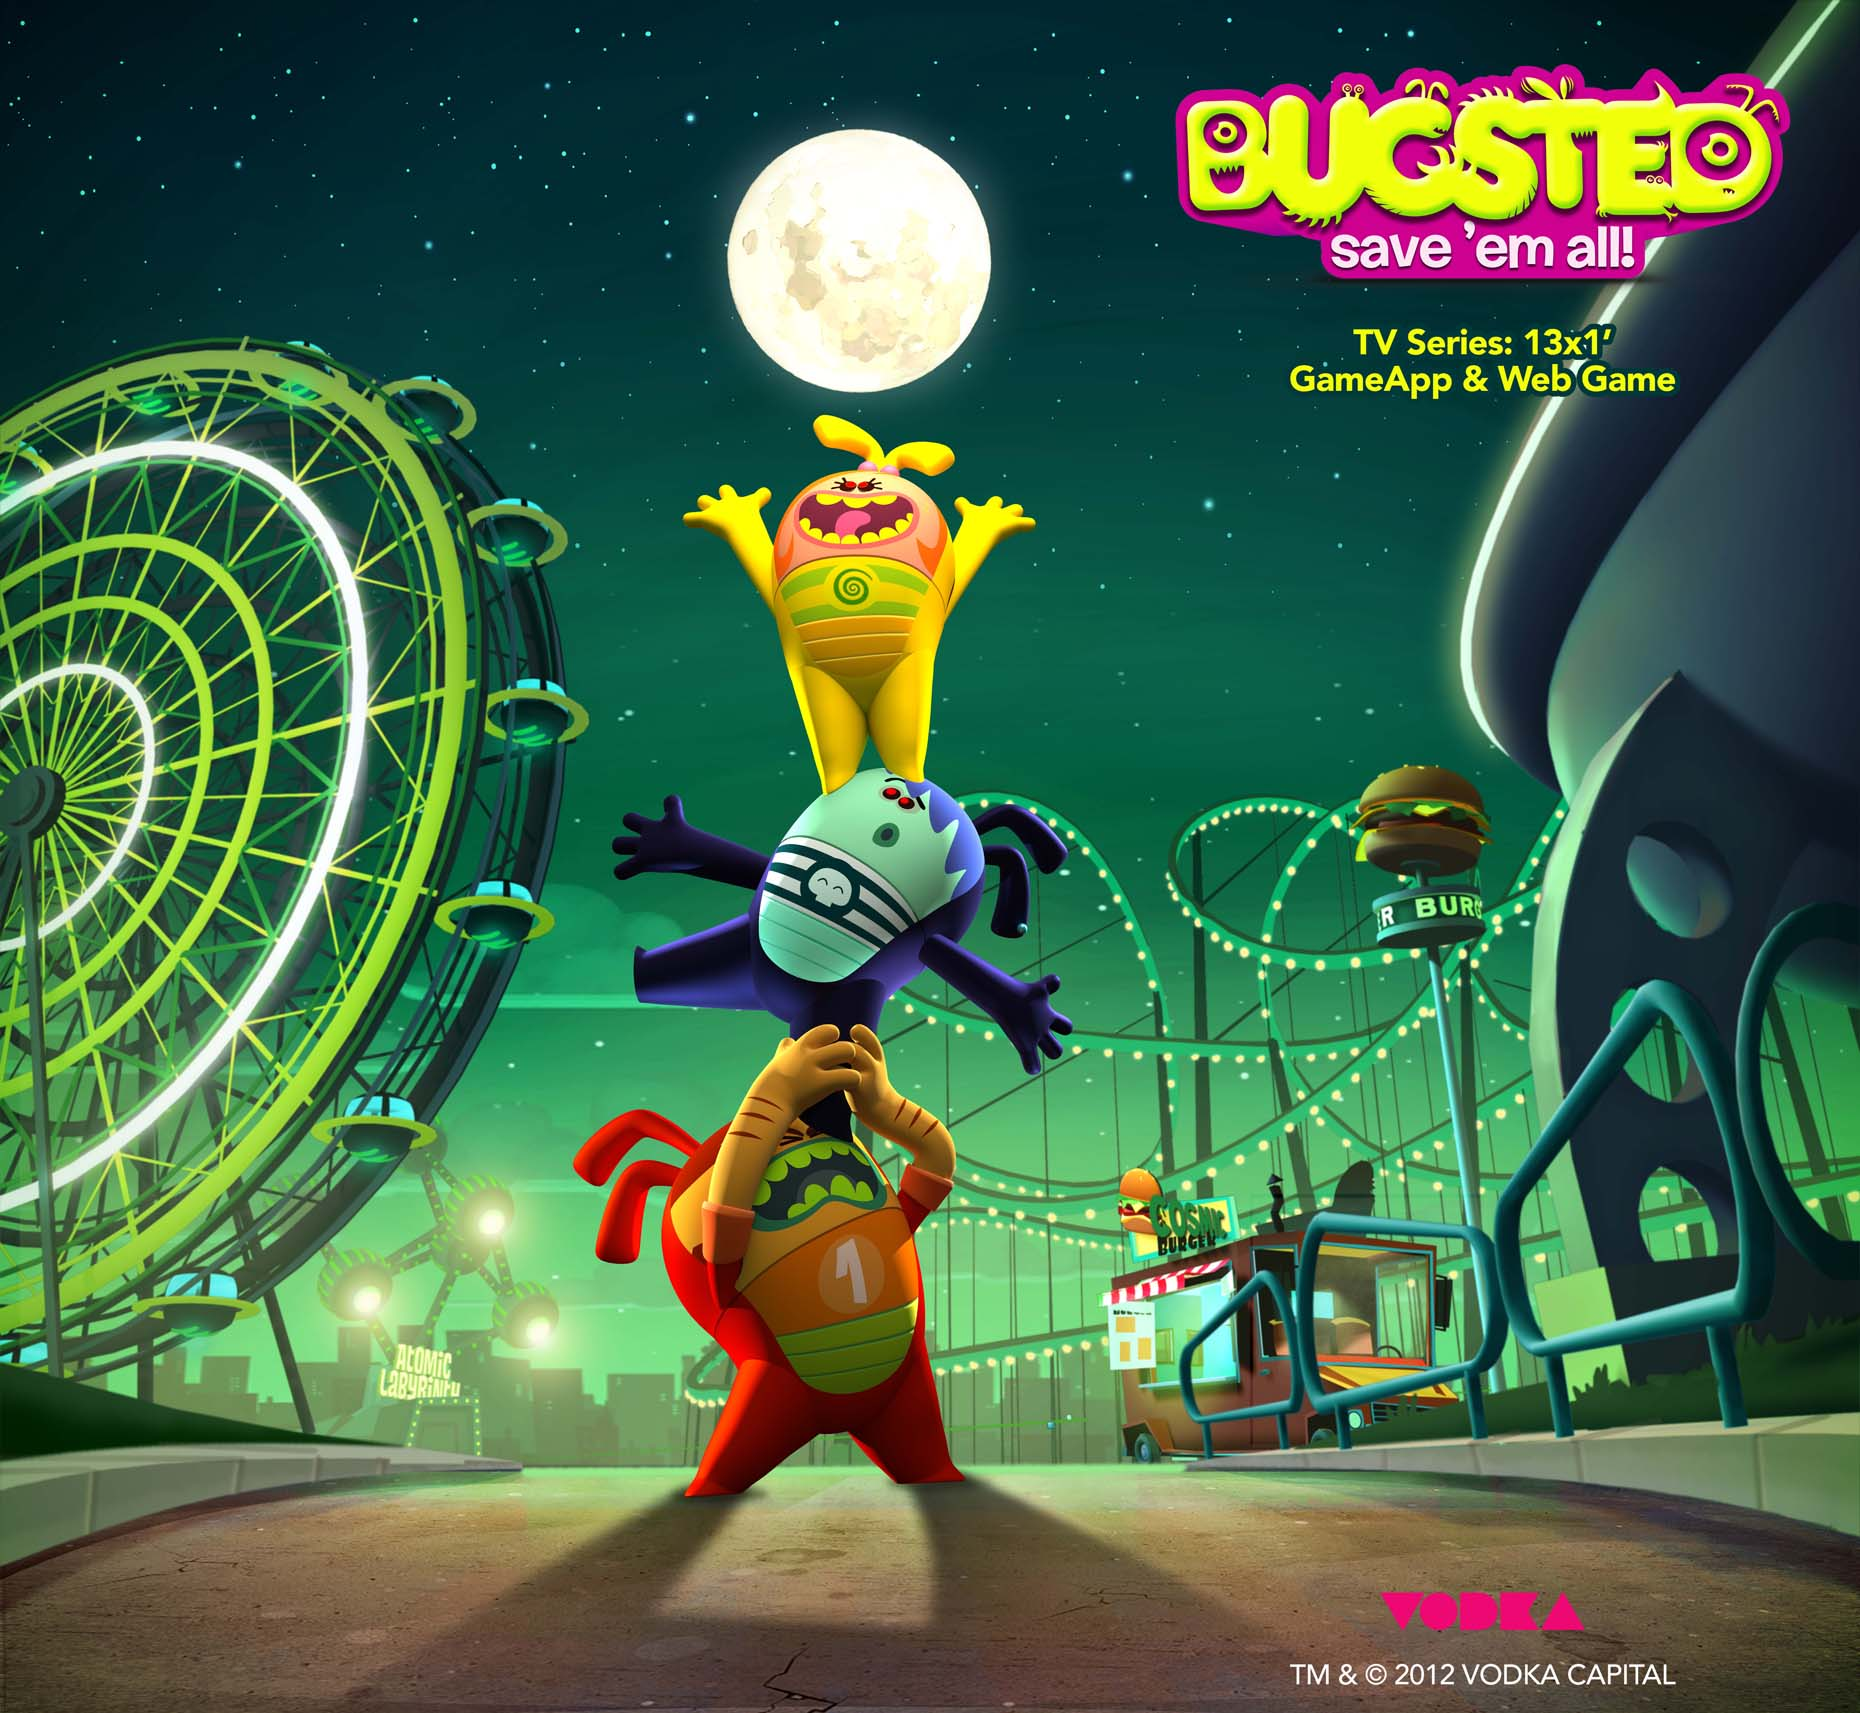 Bugsted_poster_final